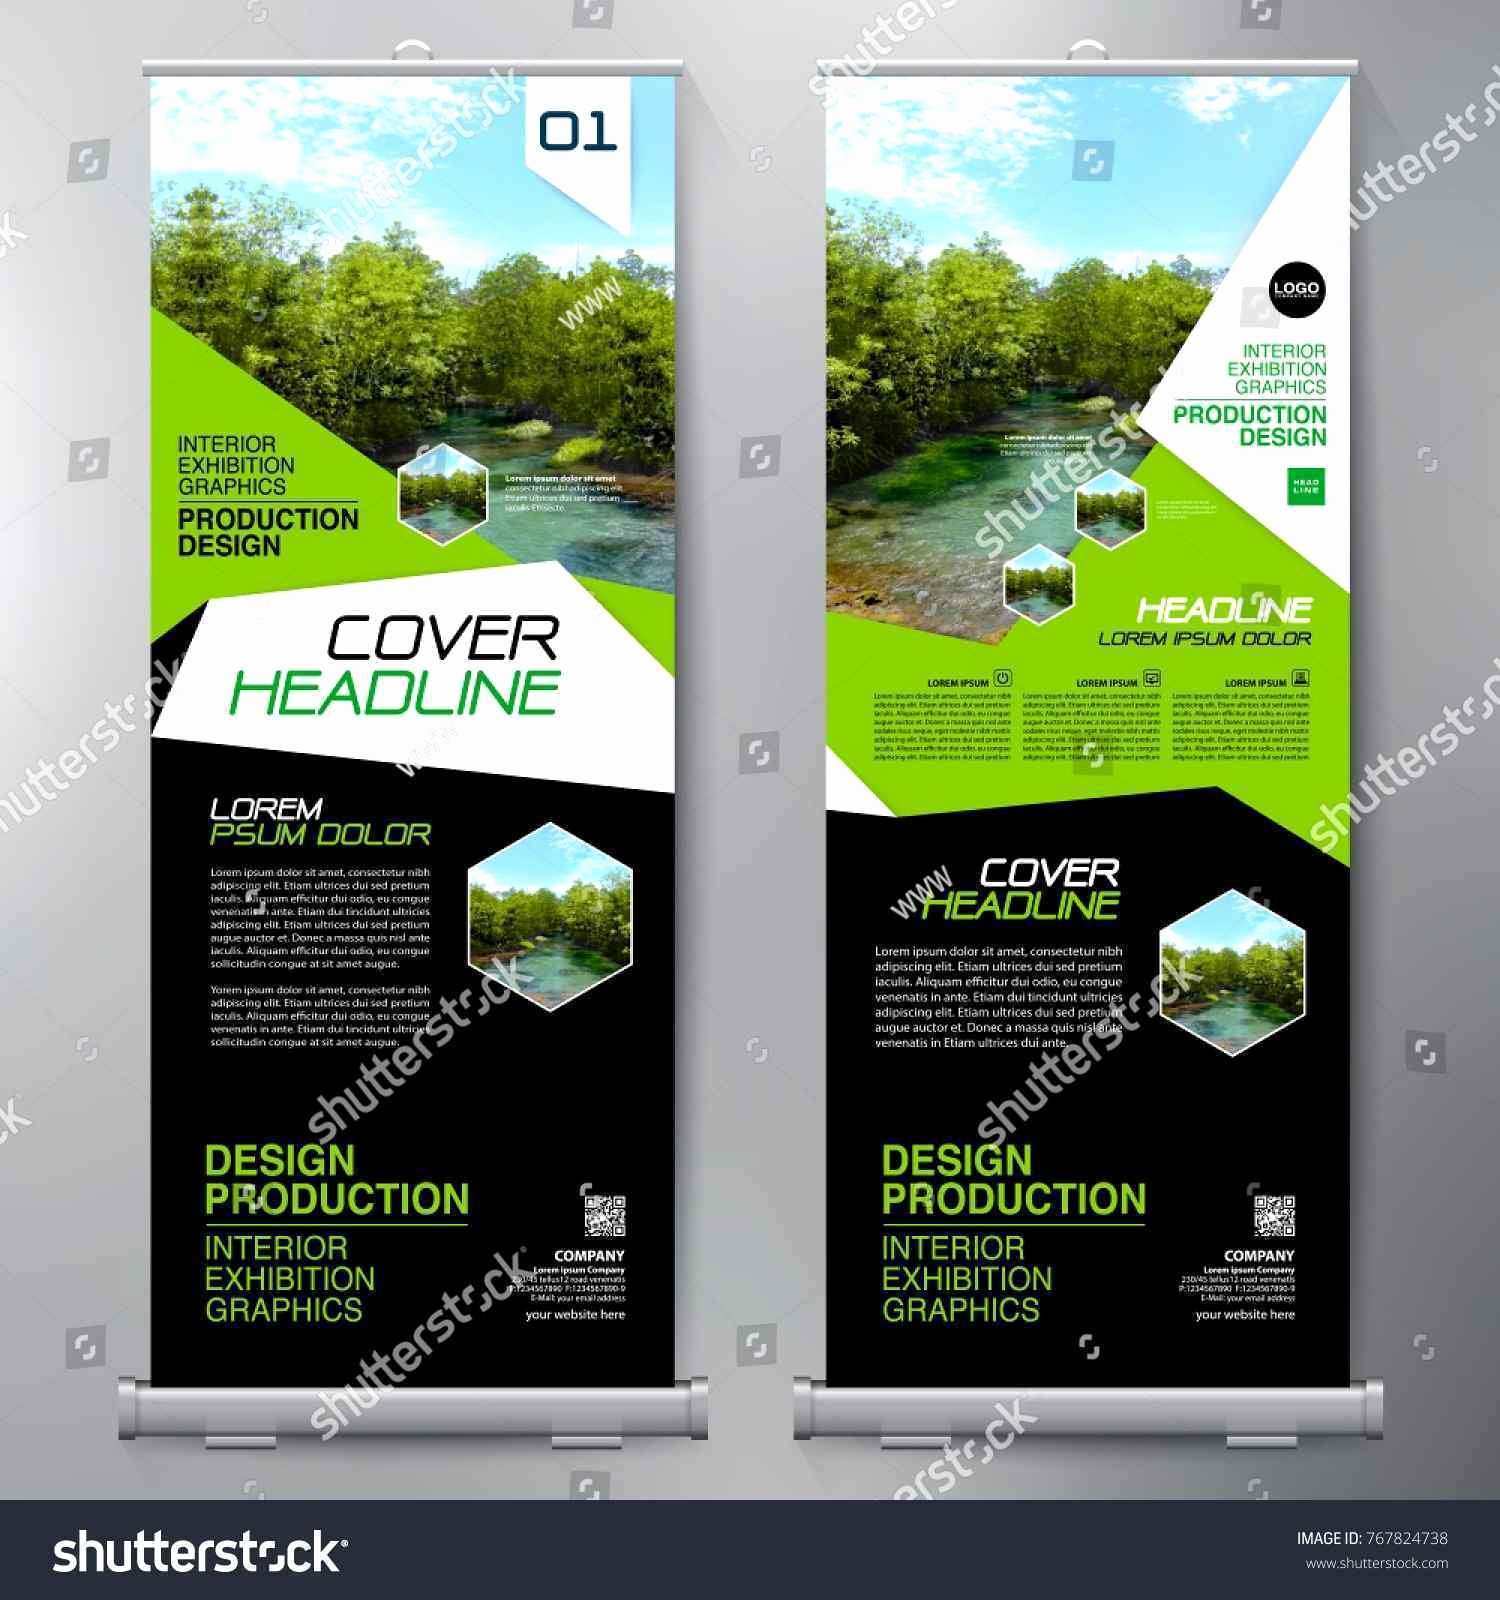 Pop Up Banner Template Unique Pop Up Banner Template Unique Business Roll Up Standee